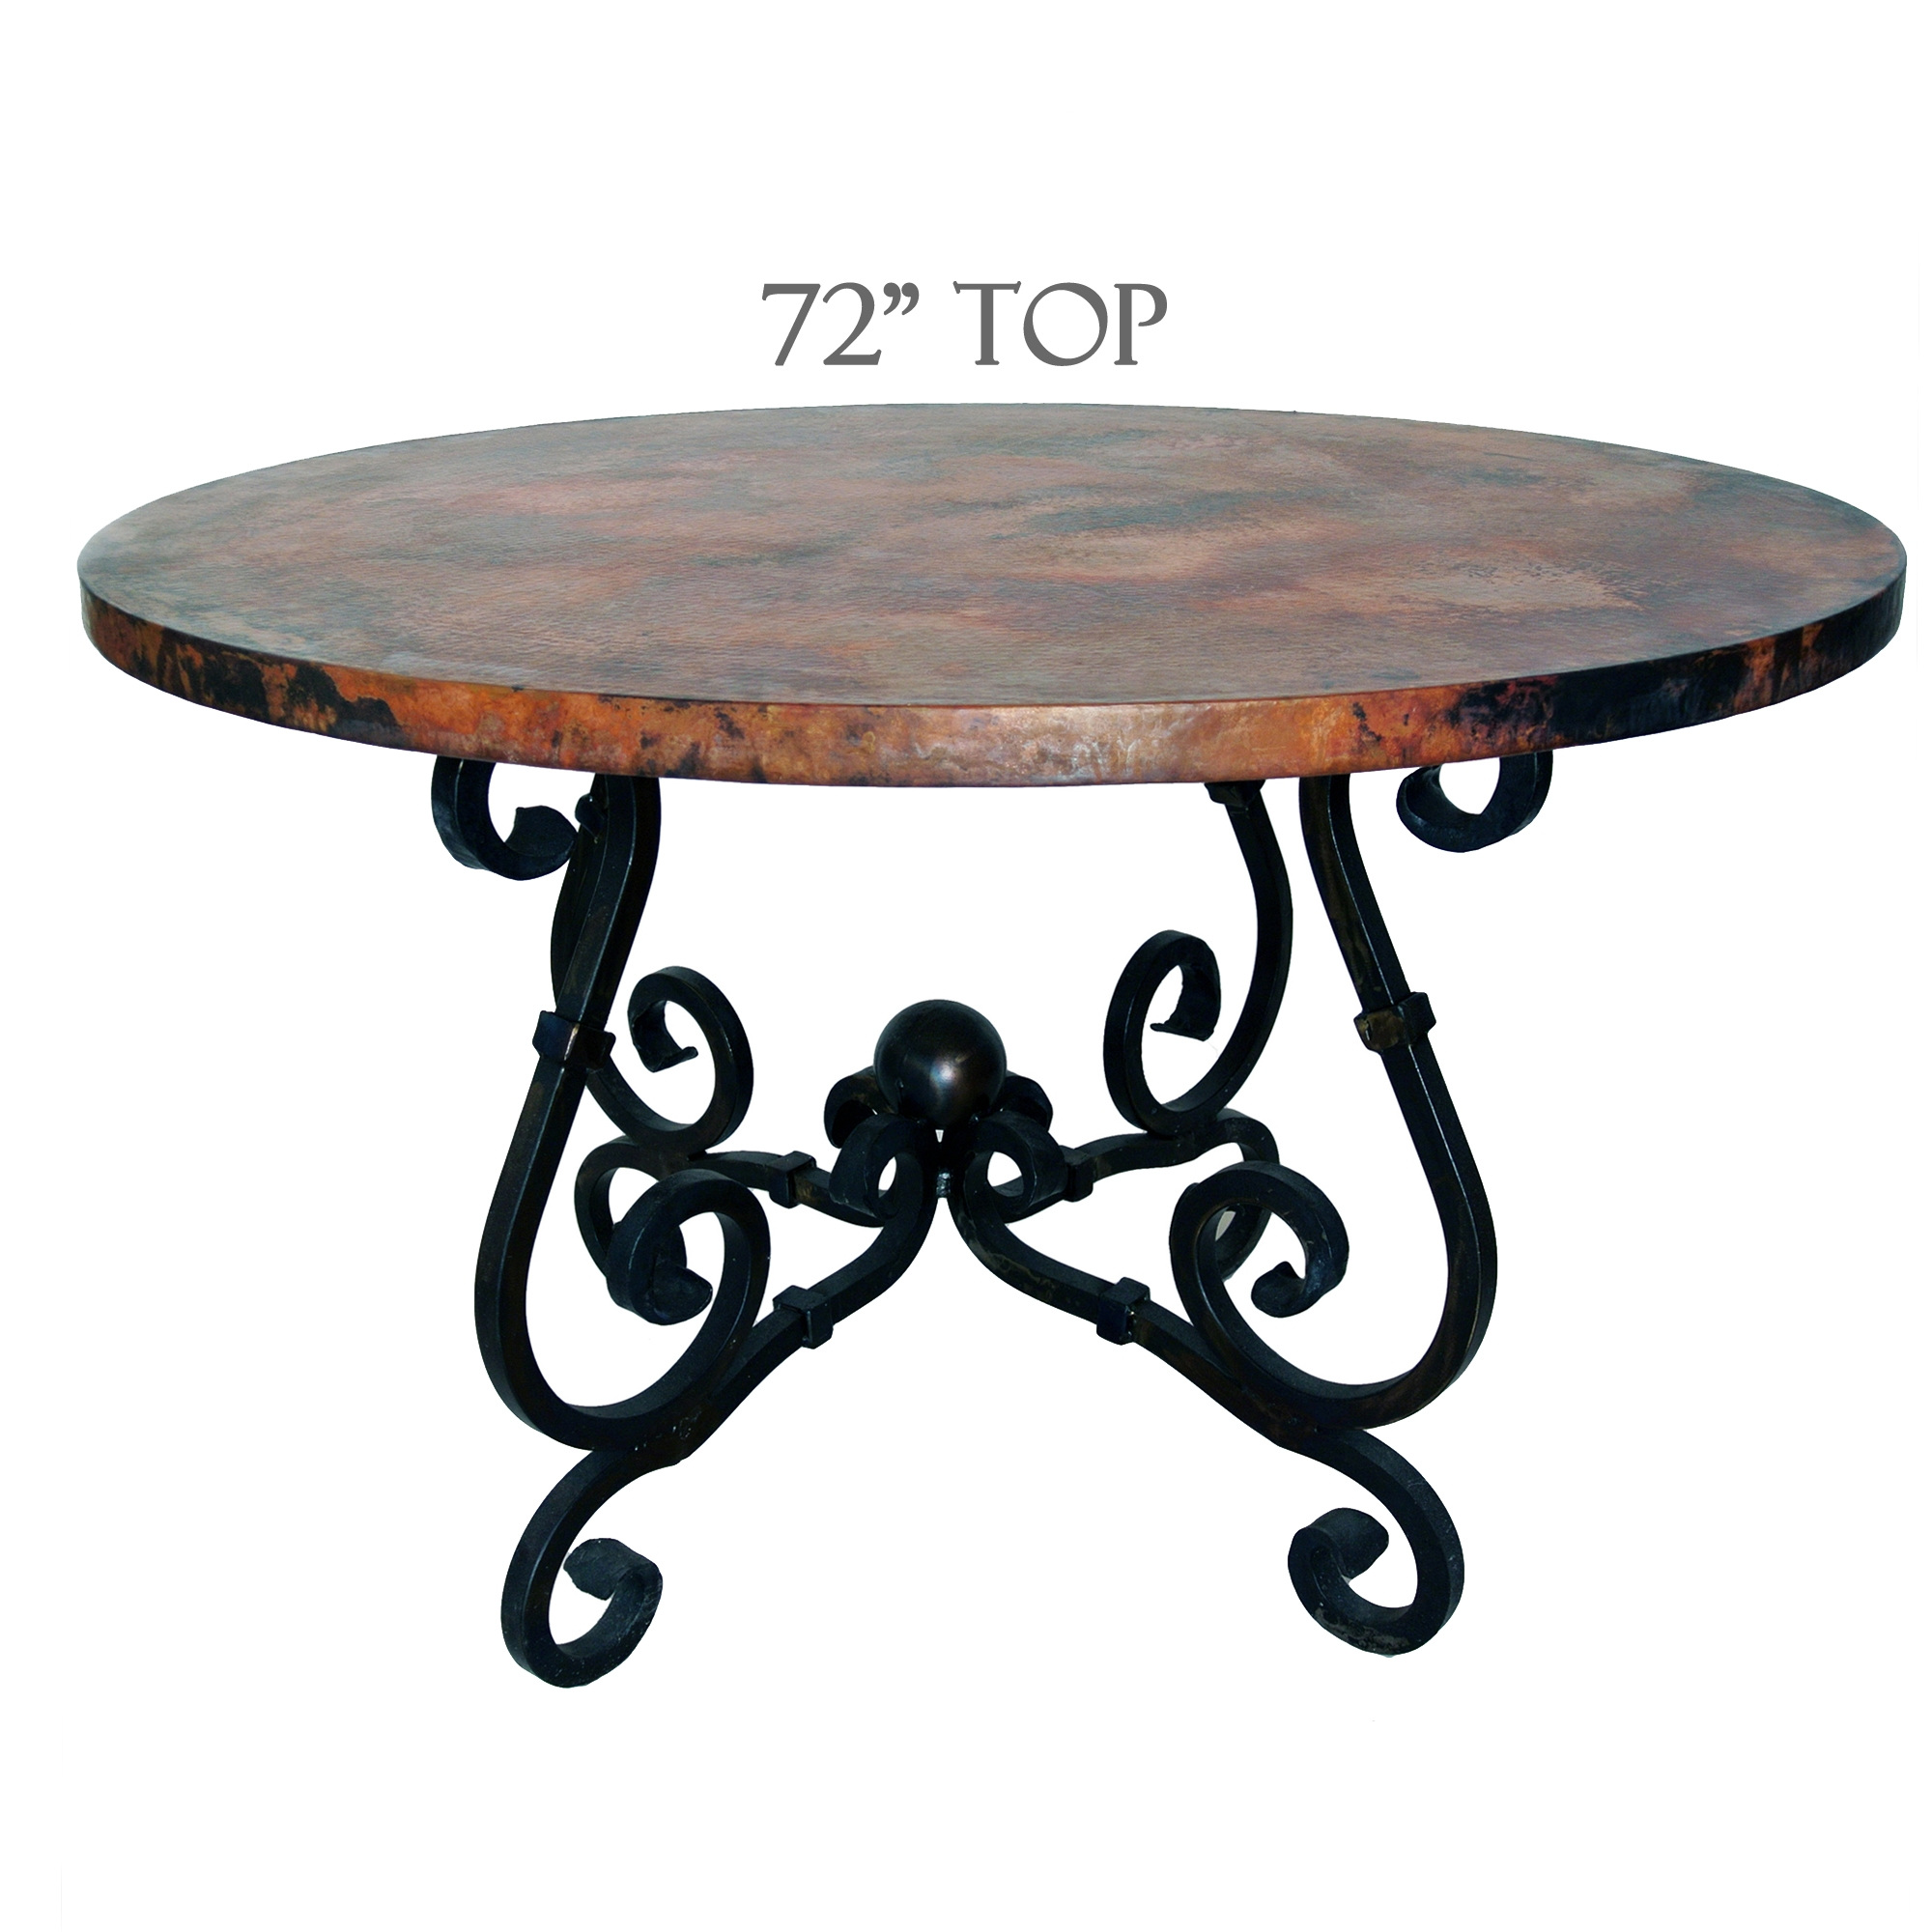 Wrought Iron Pedestal Table Base Best Home Decorating Ideas